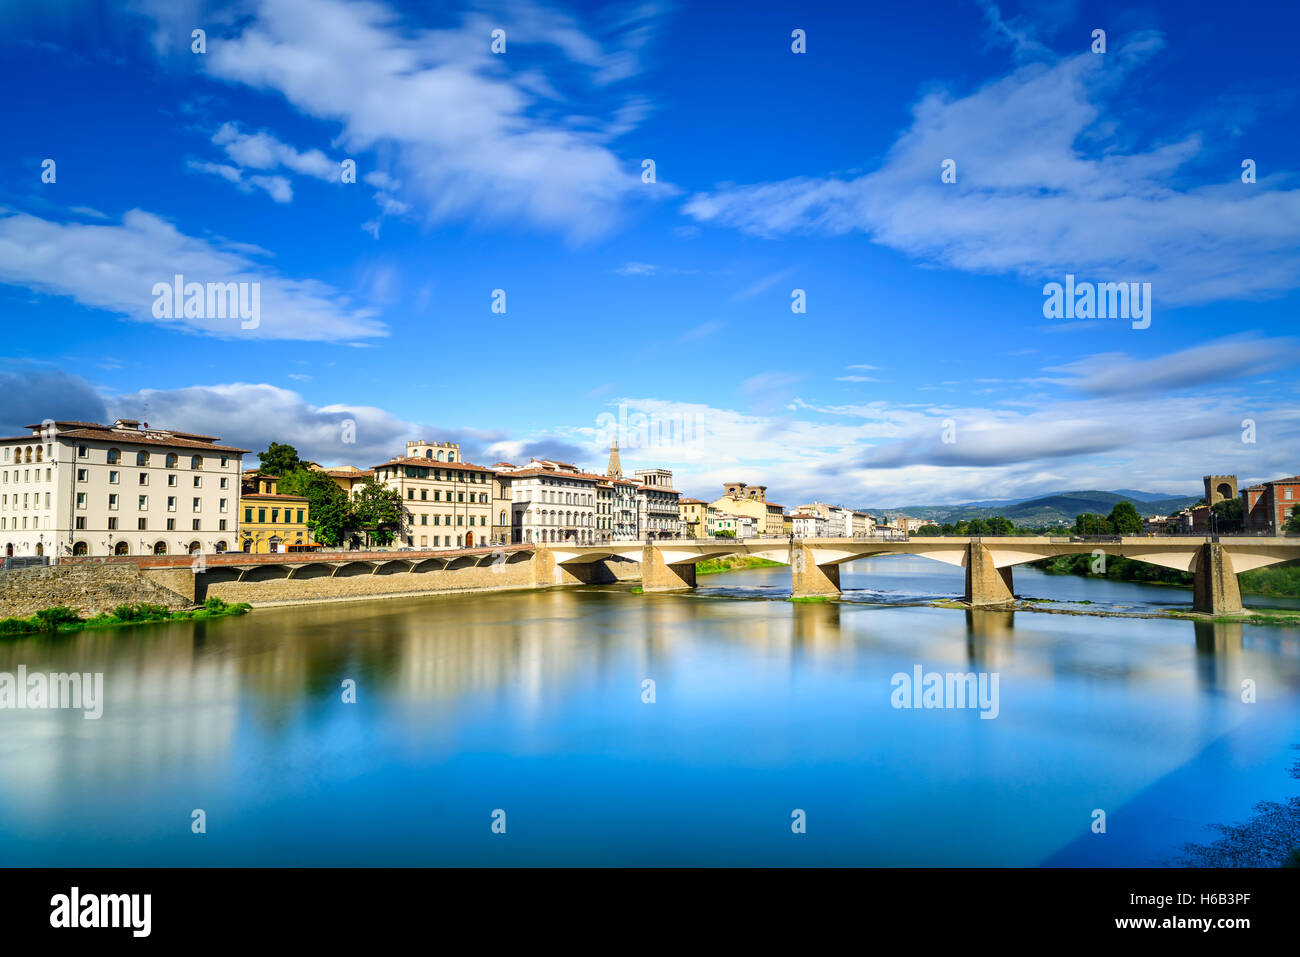 Florence or Firenze, Ponte alle Grazie bridge landmark on Arno river, sunset landscape with reflection. Tuscany, - Stock Image